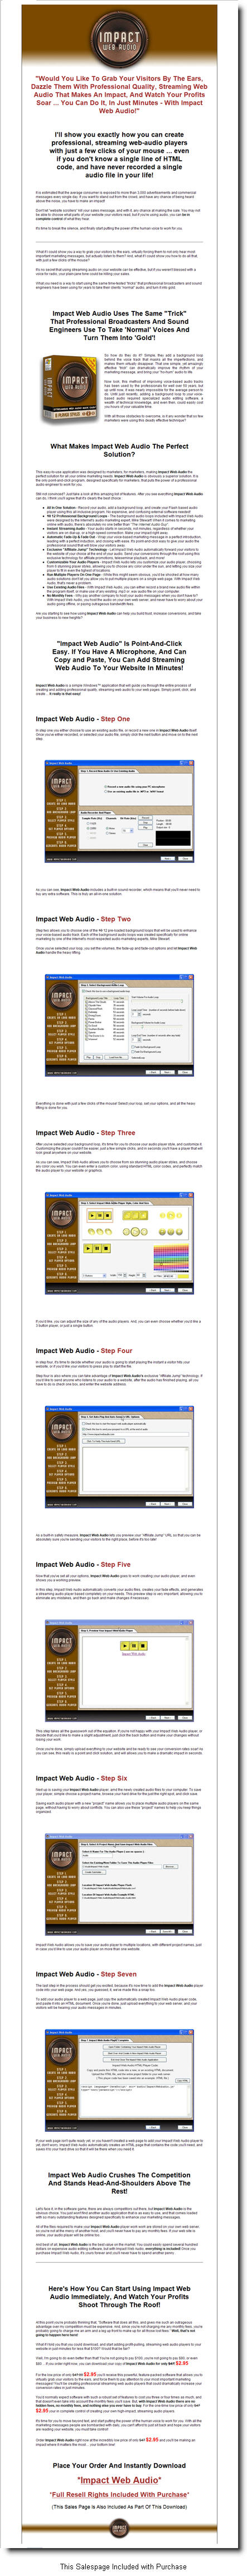 Master Resale Rights - Resell Rights Wholesale Superstore